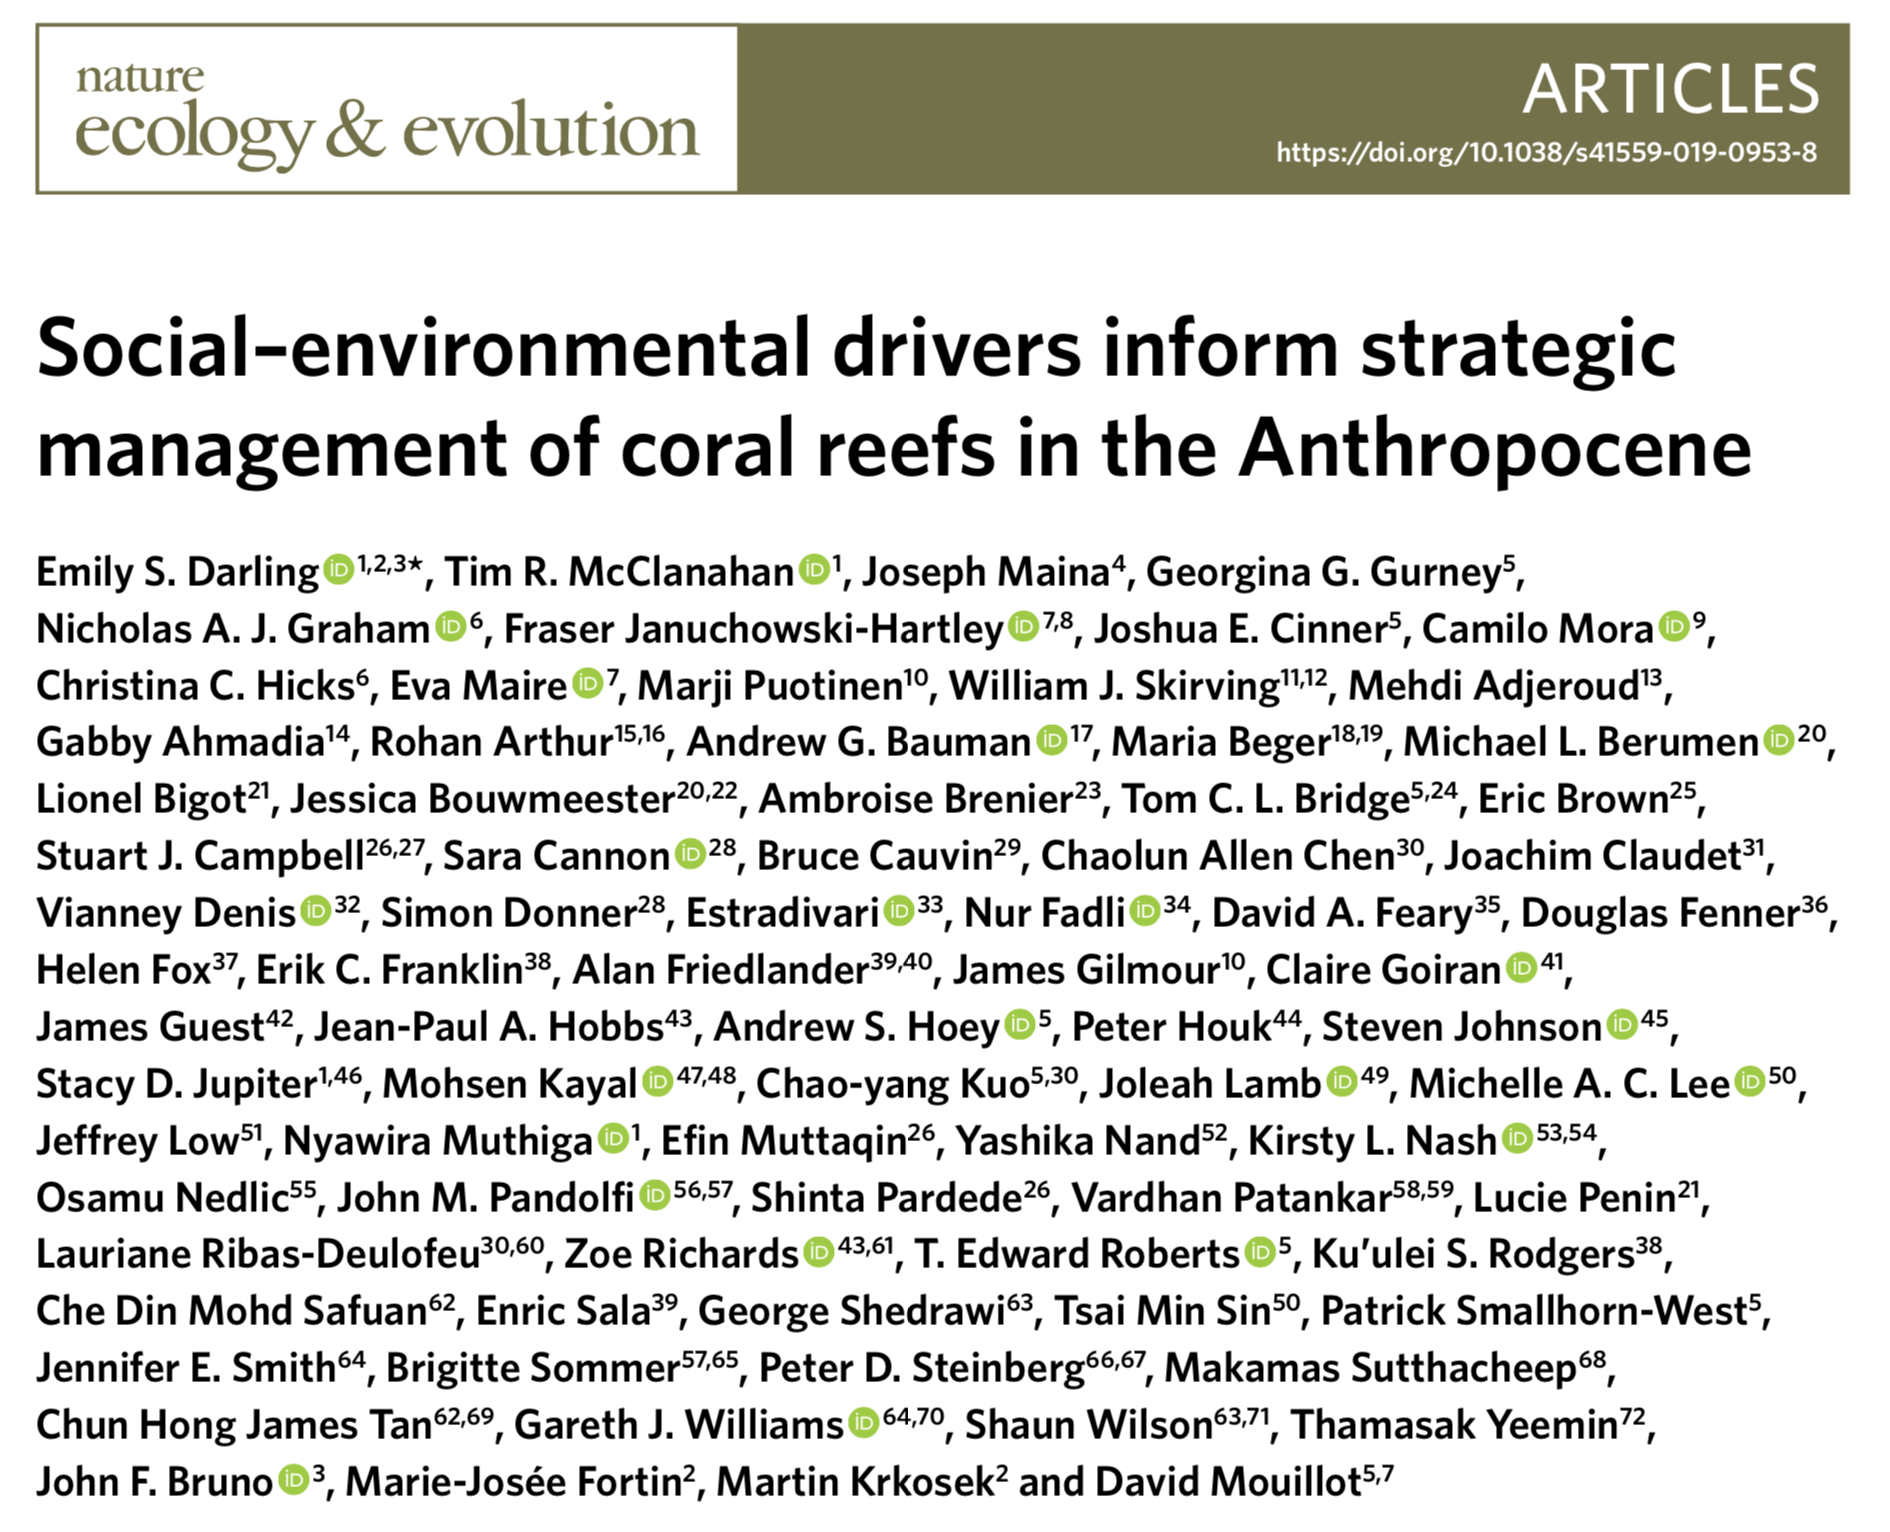 Featured Science: - 2,500 coral reefs, 81 authors, 44 countries and six years. In one of the largest studies of coral reefs, we identify key social and environmental drivers of Indo-Pacific coral communities and propose a protect, recover and transform management strategies in the face of climate change. Article in Nature Ecology and EvolutionMedia coverage by CNN, Forbes and Radio AustraliaNews and Views perspective by Simon BrandlNature Ecology and Evolution blog on, Big data and bigger collaborations